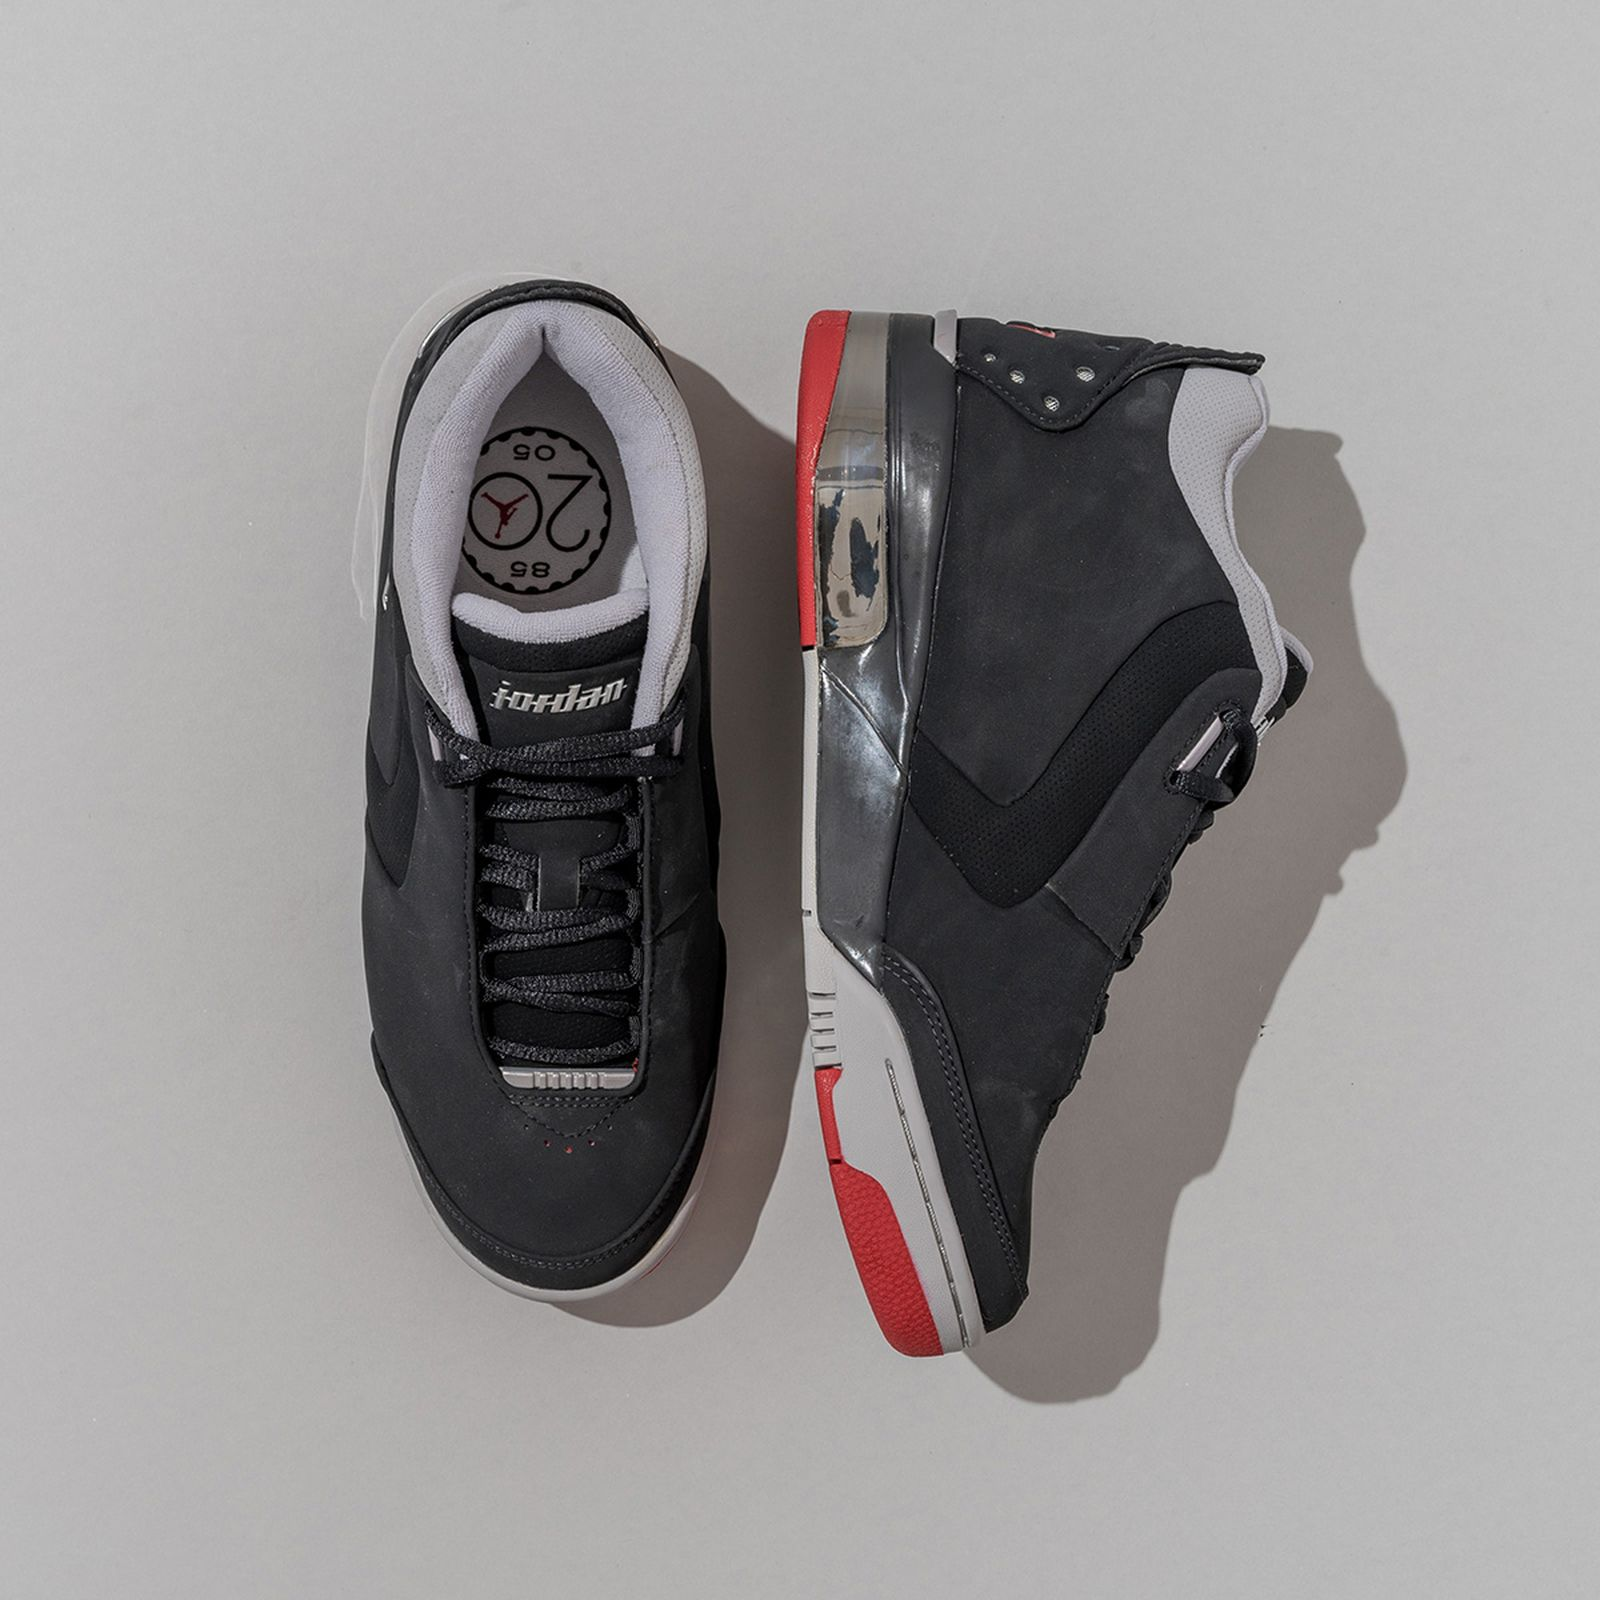 brad-hogan-jordan-sneaker-collection-04